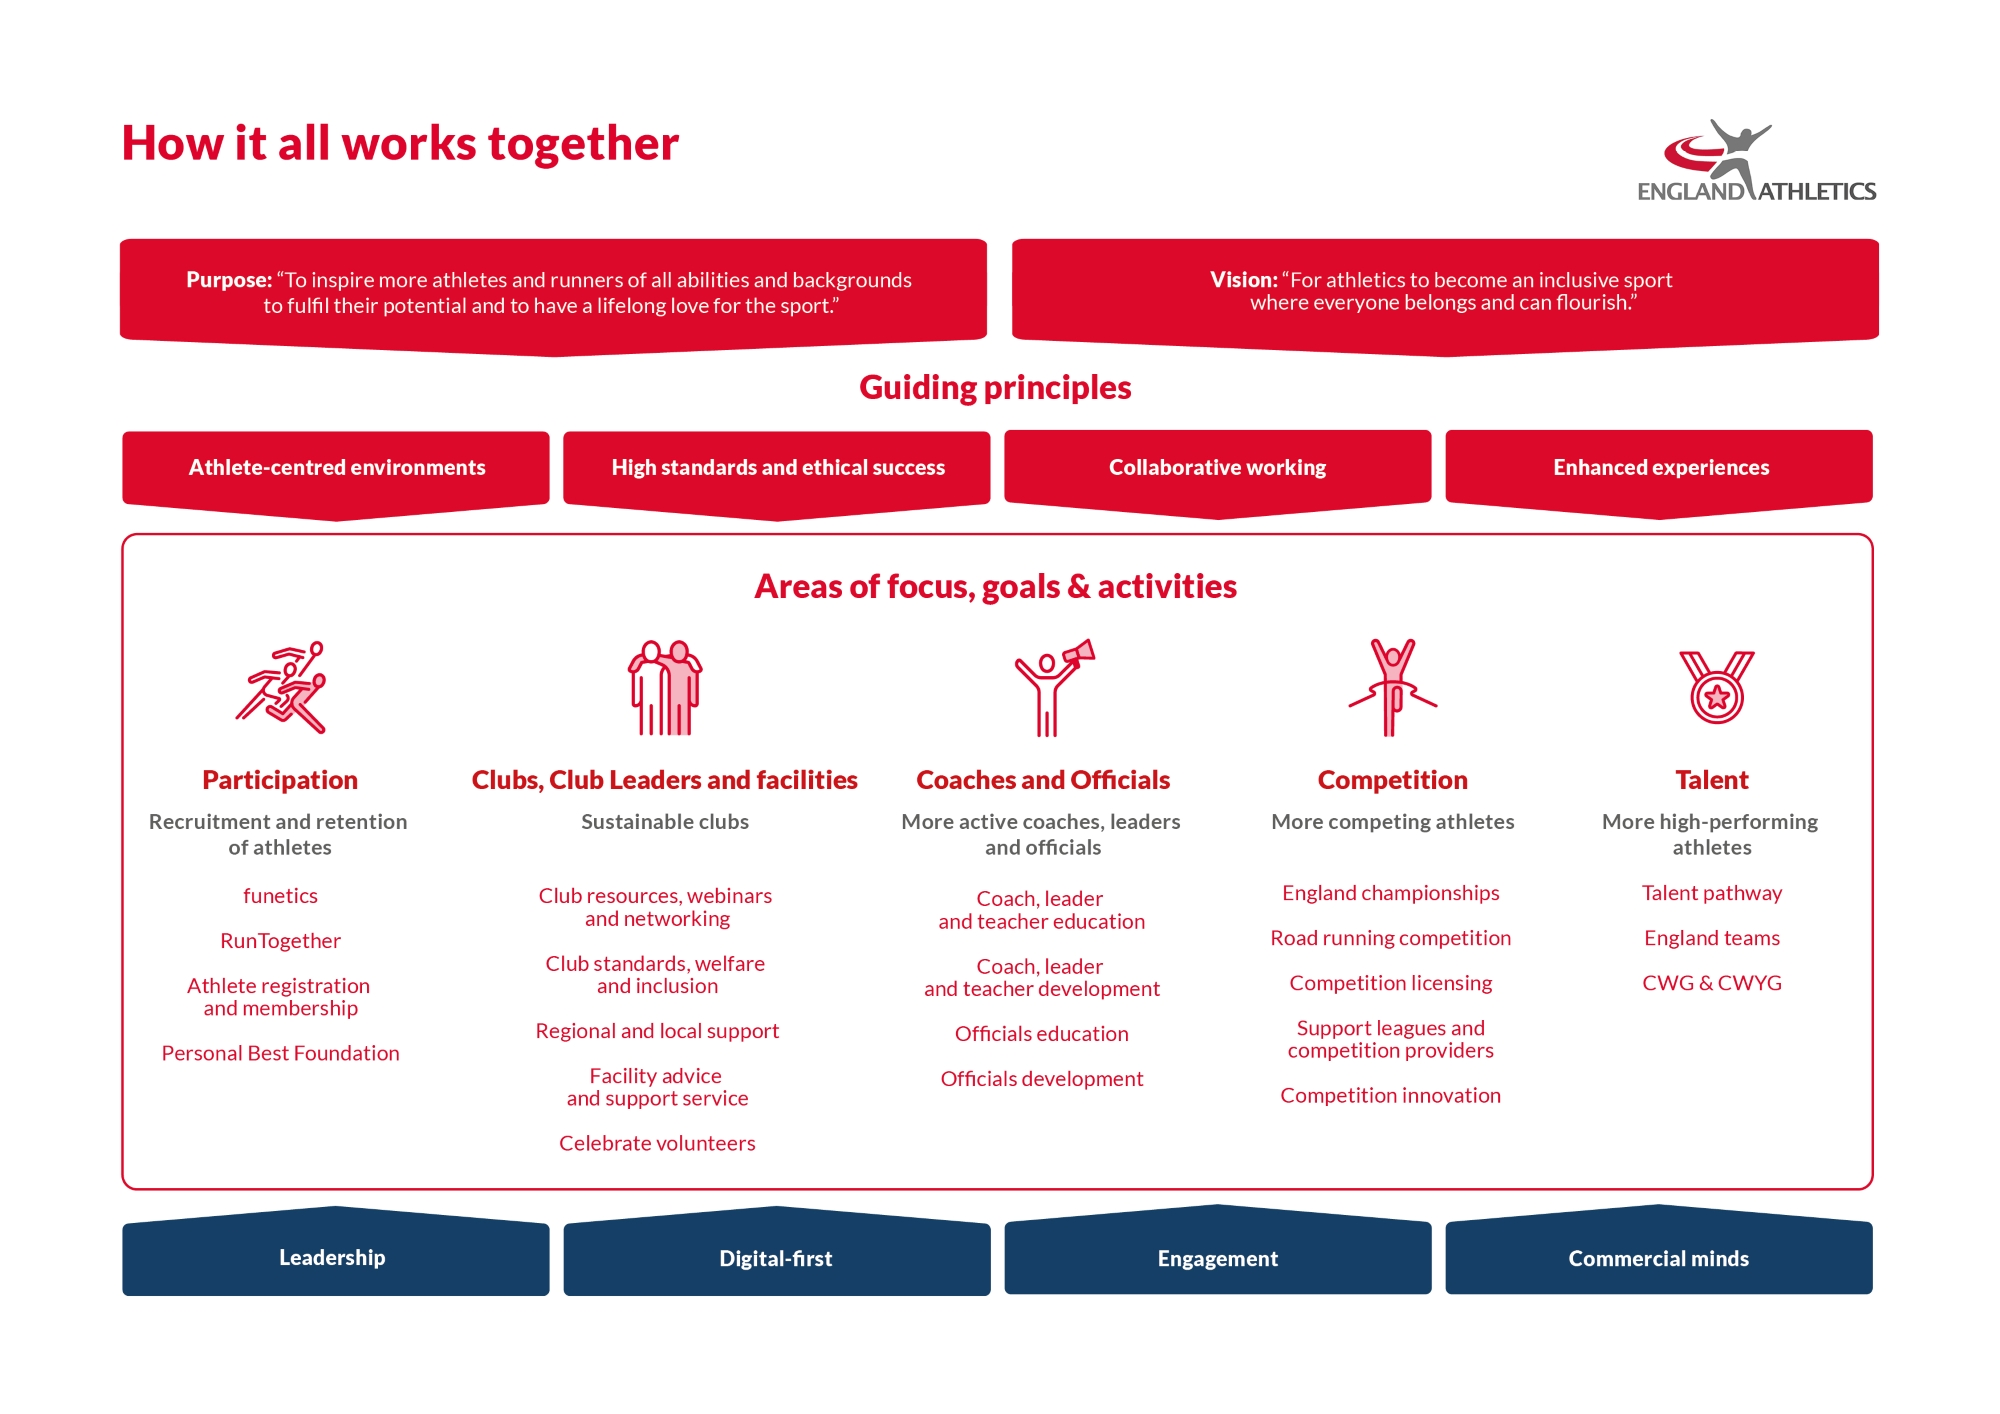 England Athletics Strategy - how it all works together diagram